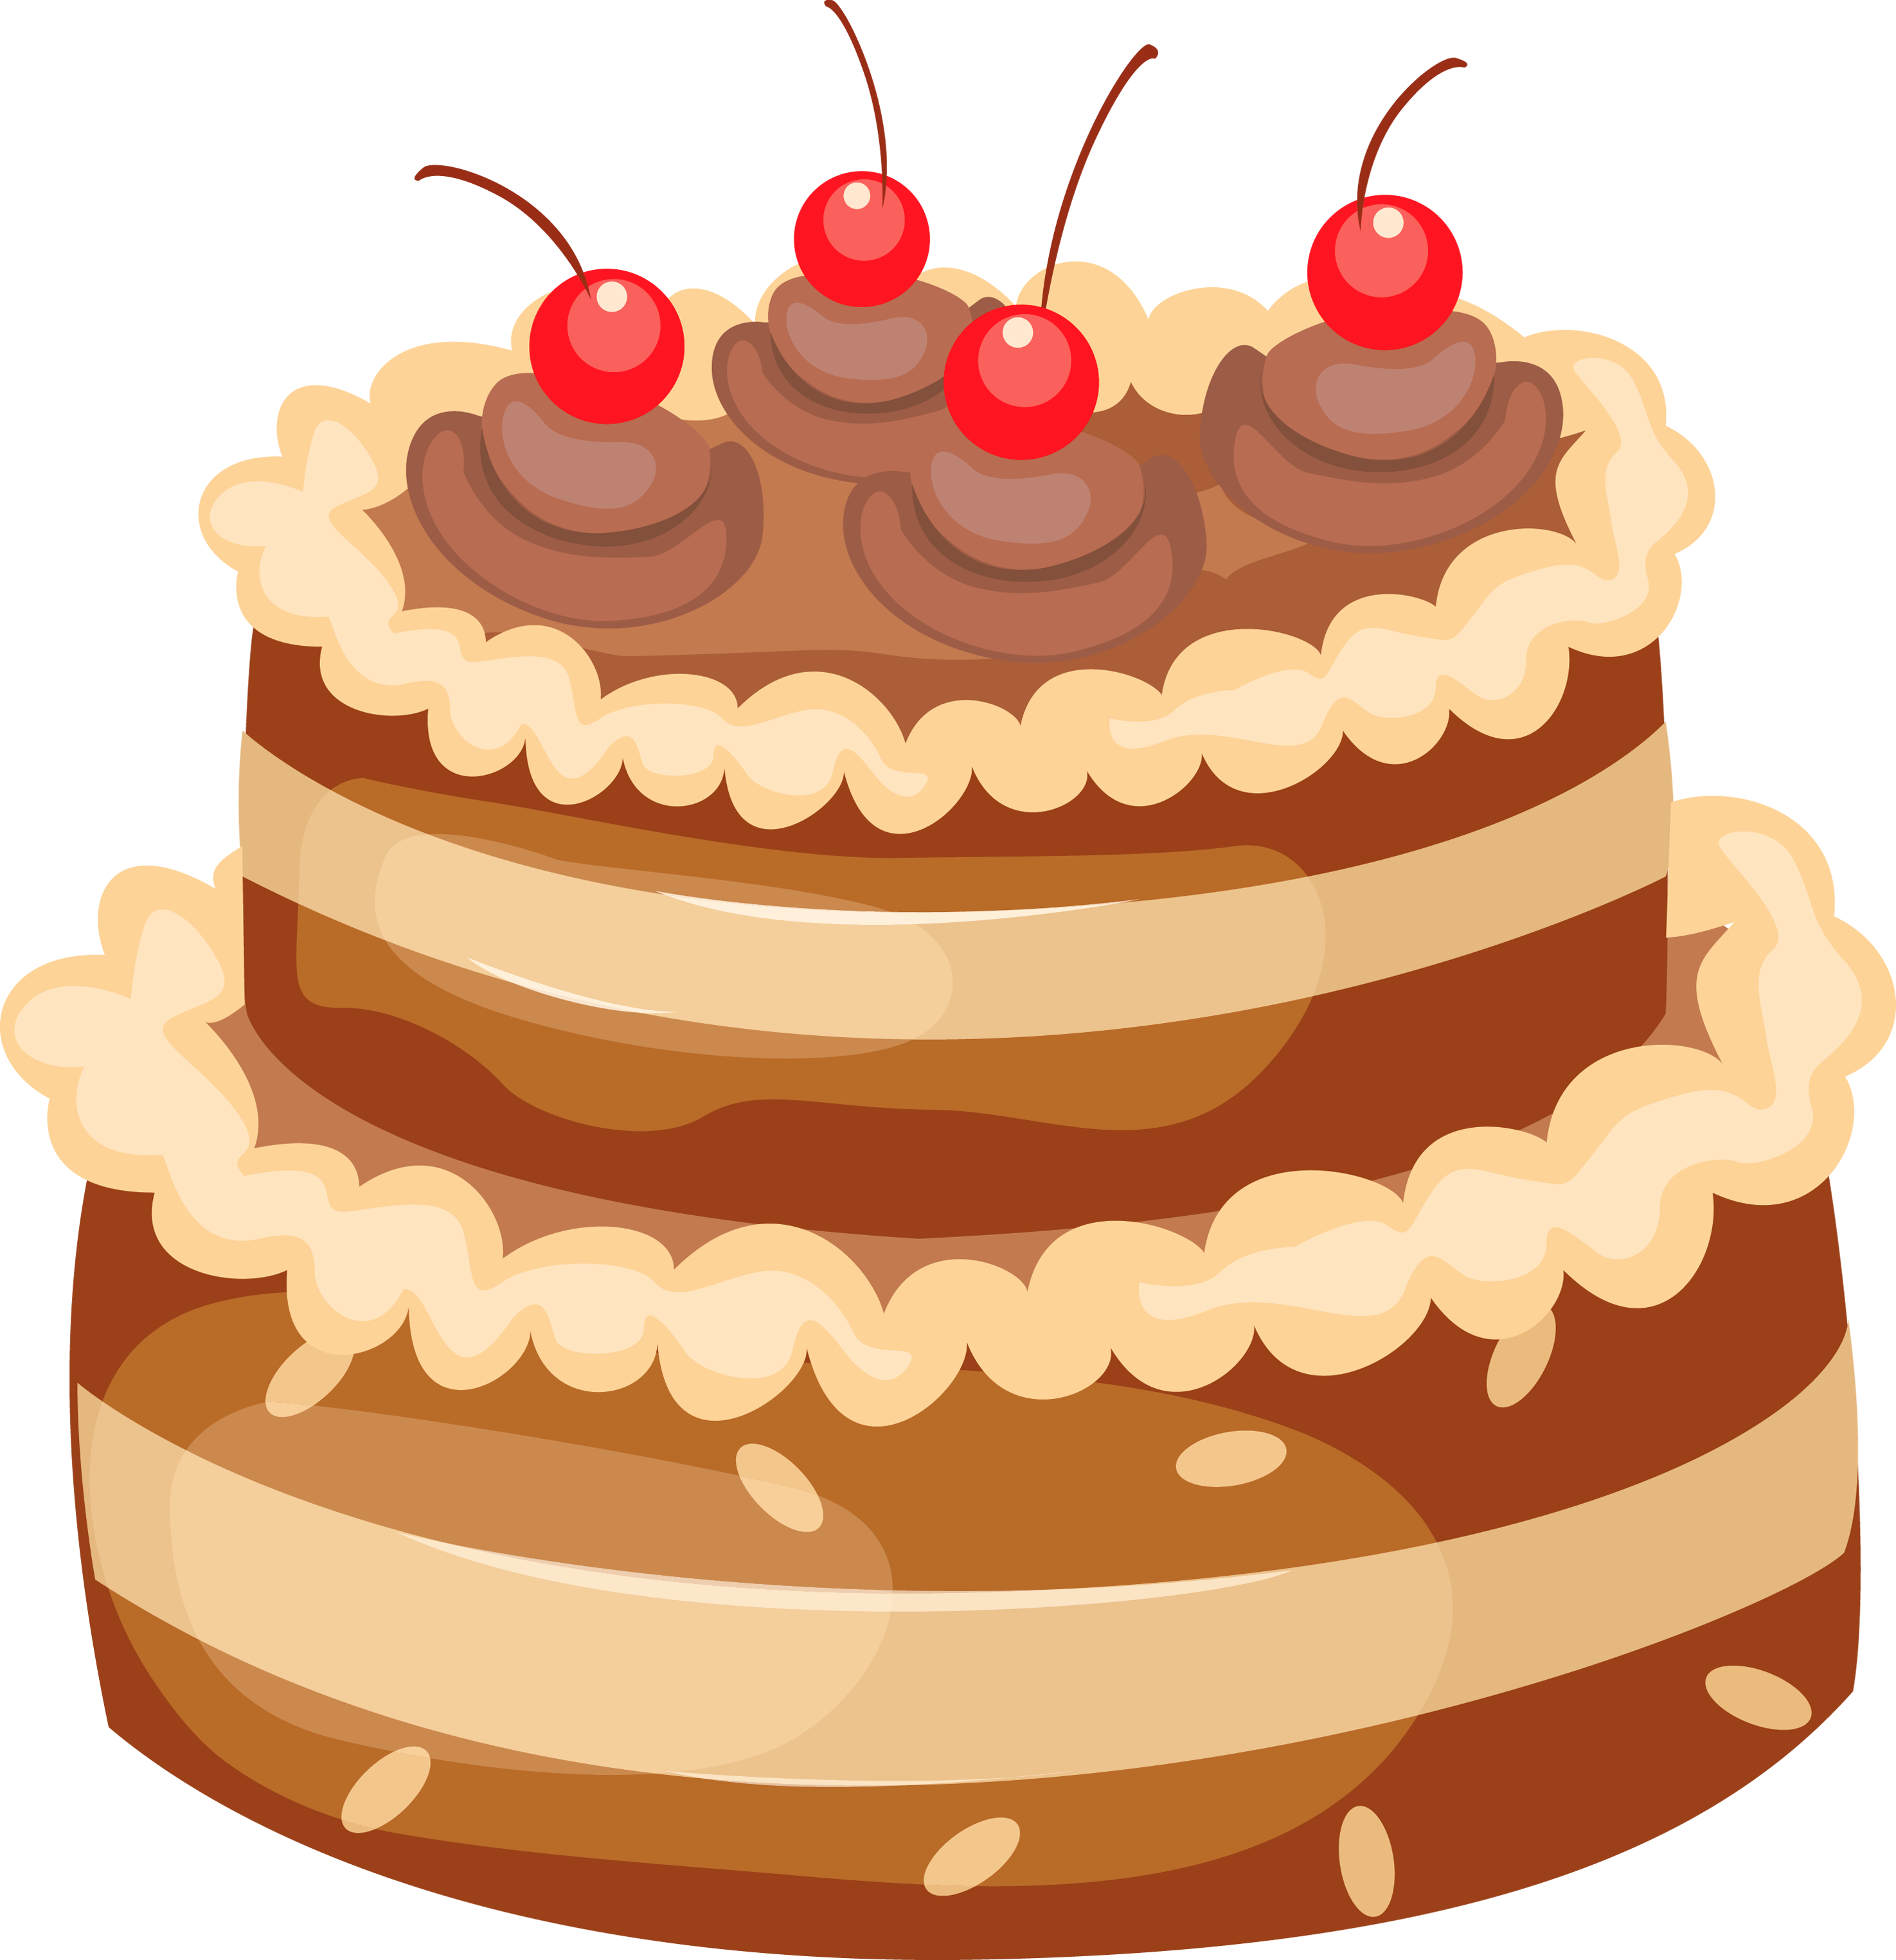 Cake Drawing Clip Art : Clip Art Cake - ClipArt Best